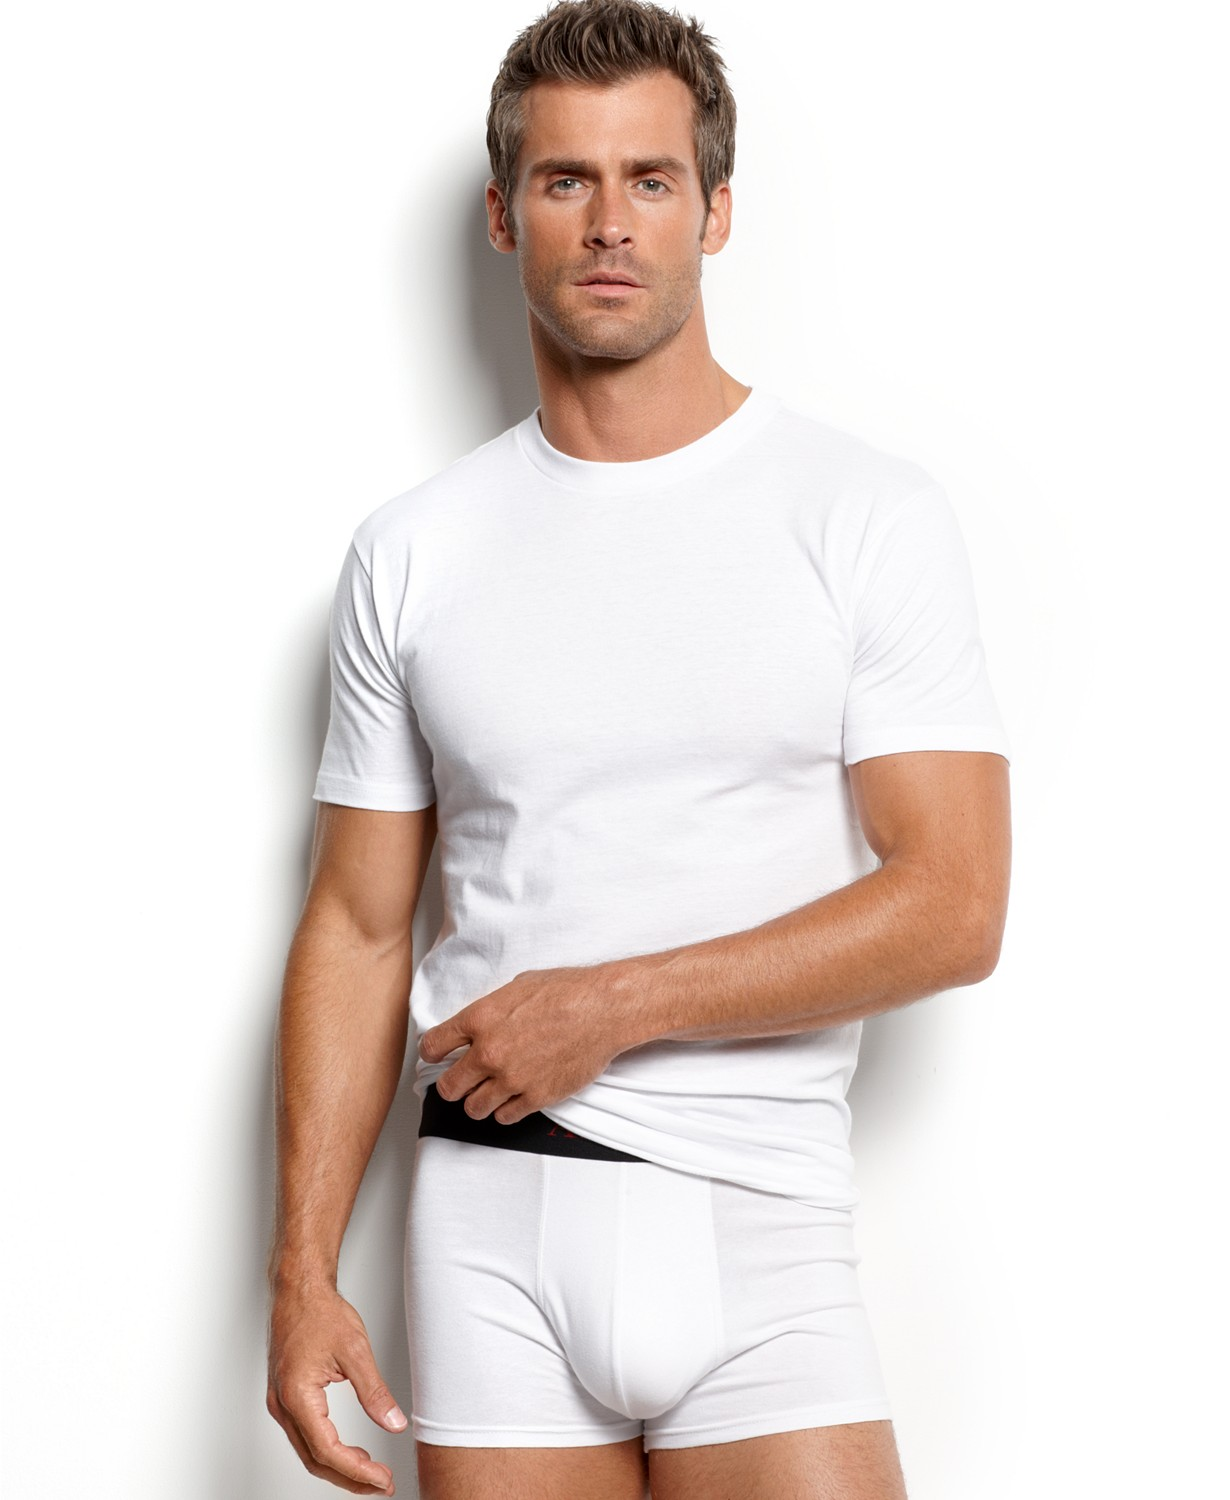 4-Pack Alfani Men's Underwear Tagless Crew Neck Undershirt